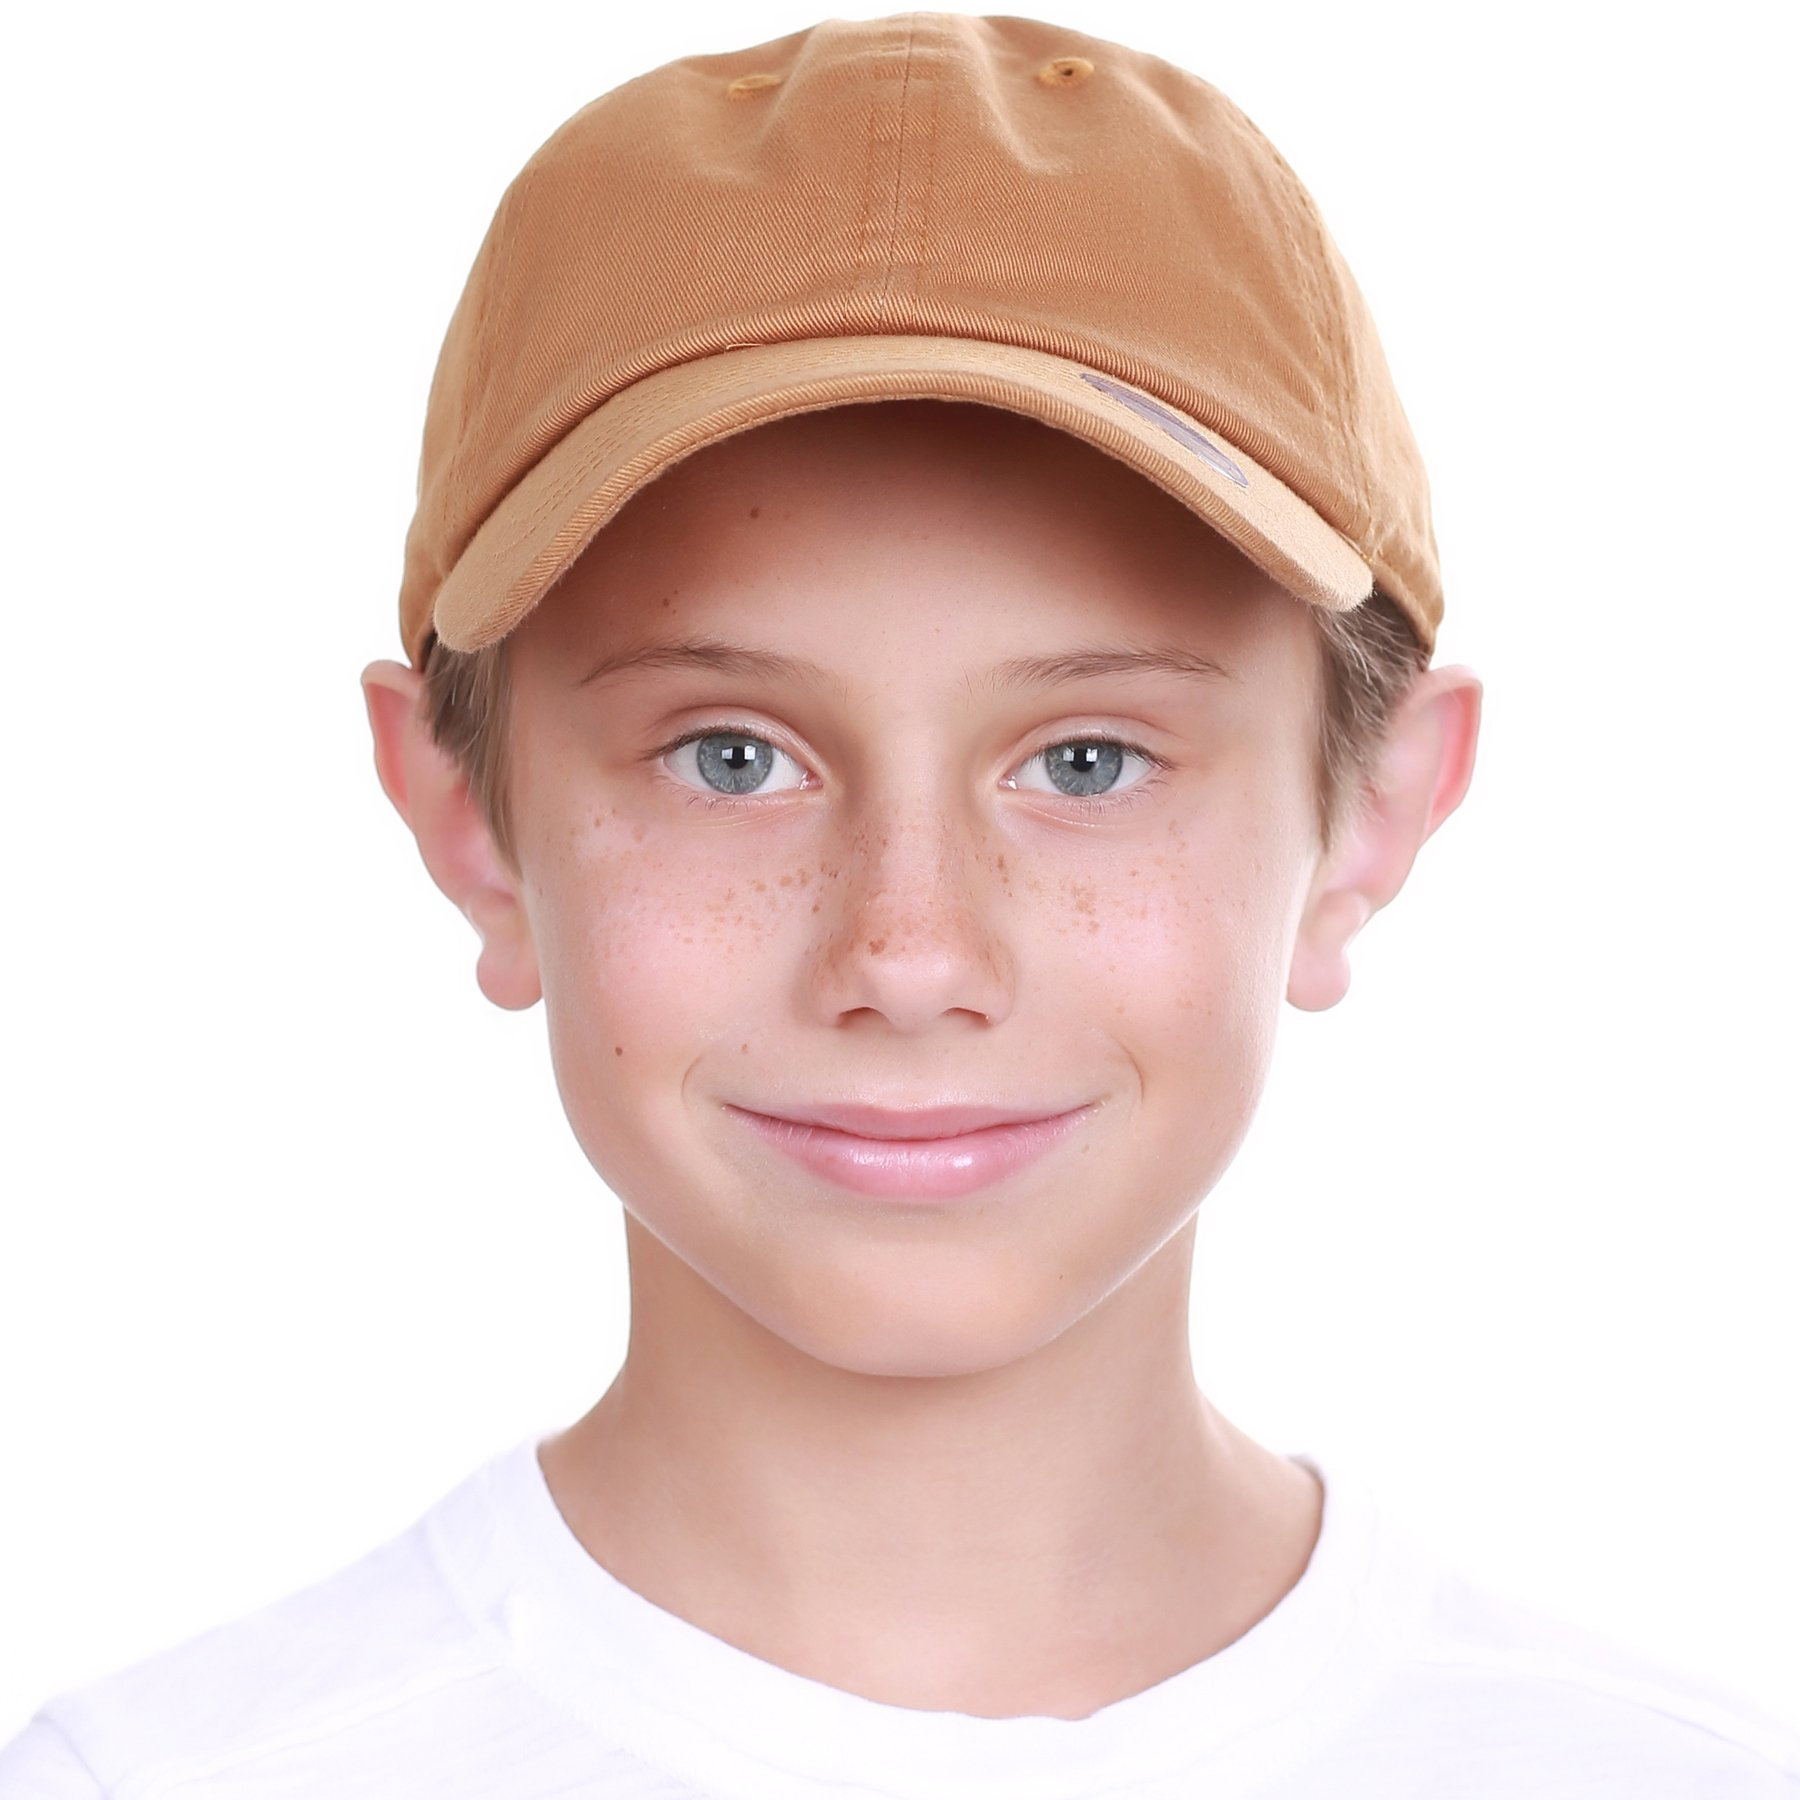 KBC-13LOW Tim (2-5) Kids Boys Girls Hats Washed Low Profile Cotton and Denim Plain Baseball Cap Hat Unisex Headwear